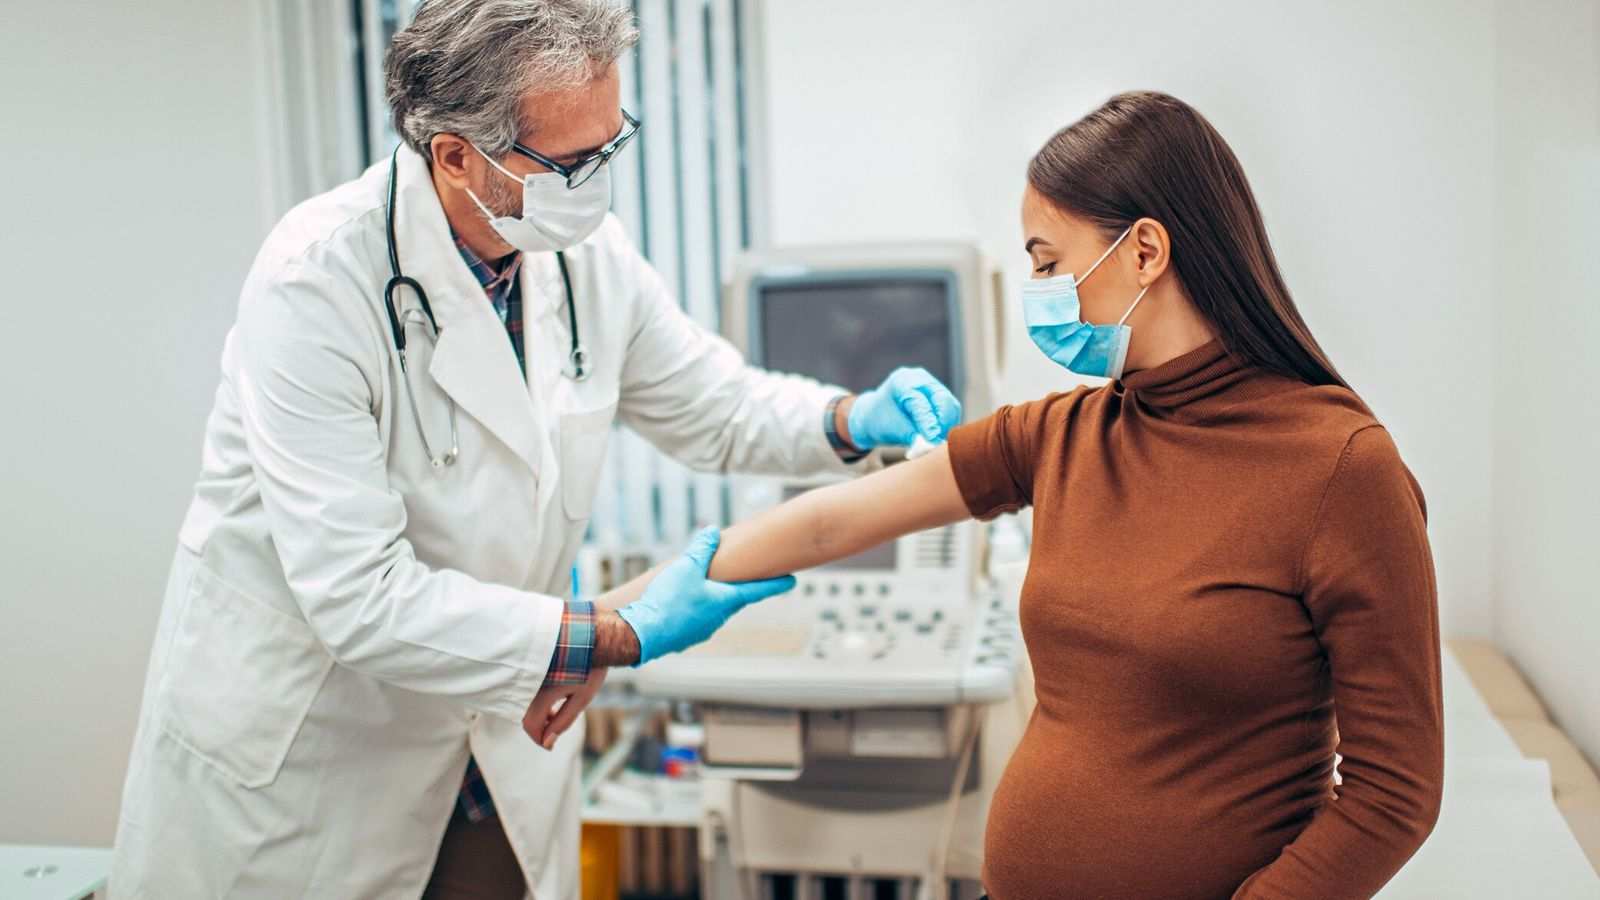 Historically excluded from clinical trials, pregnant people often must decide whether to get vaccines and drugs ...